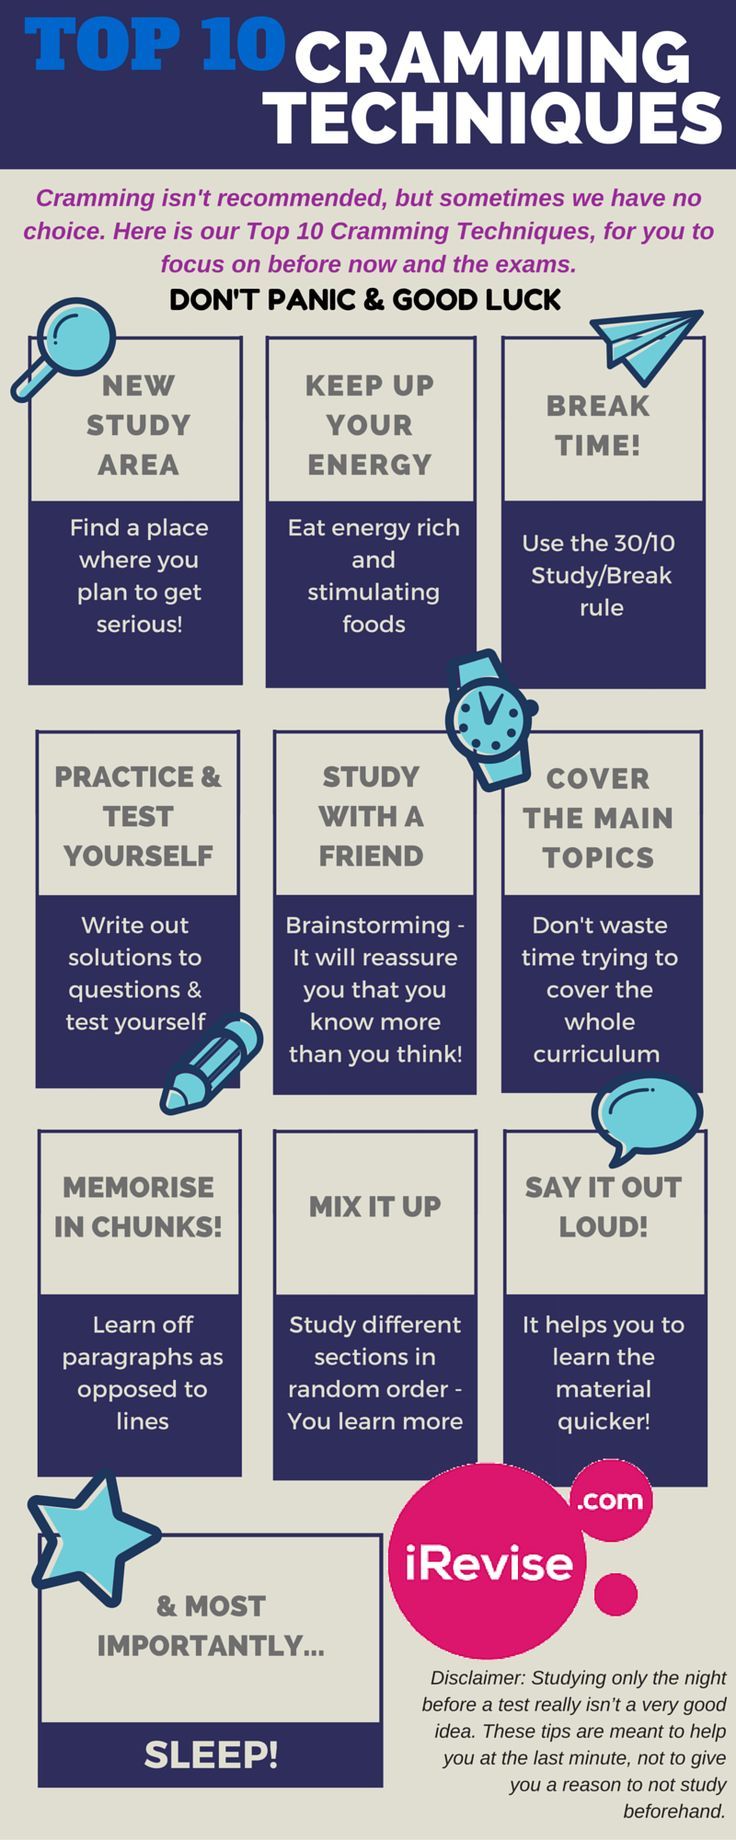 iRevise guide to help those of you, that have left studying to the last minute.     (Cramming is not advised). We do not advise leaving your studying to the last minute, but here are some helpful tips for when you do.  (The infographic is an updated version of the article).